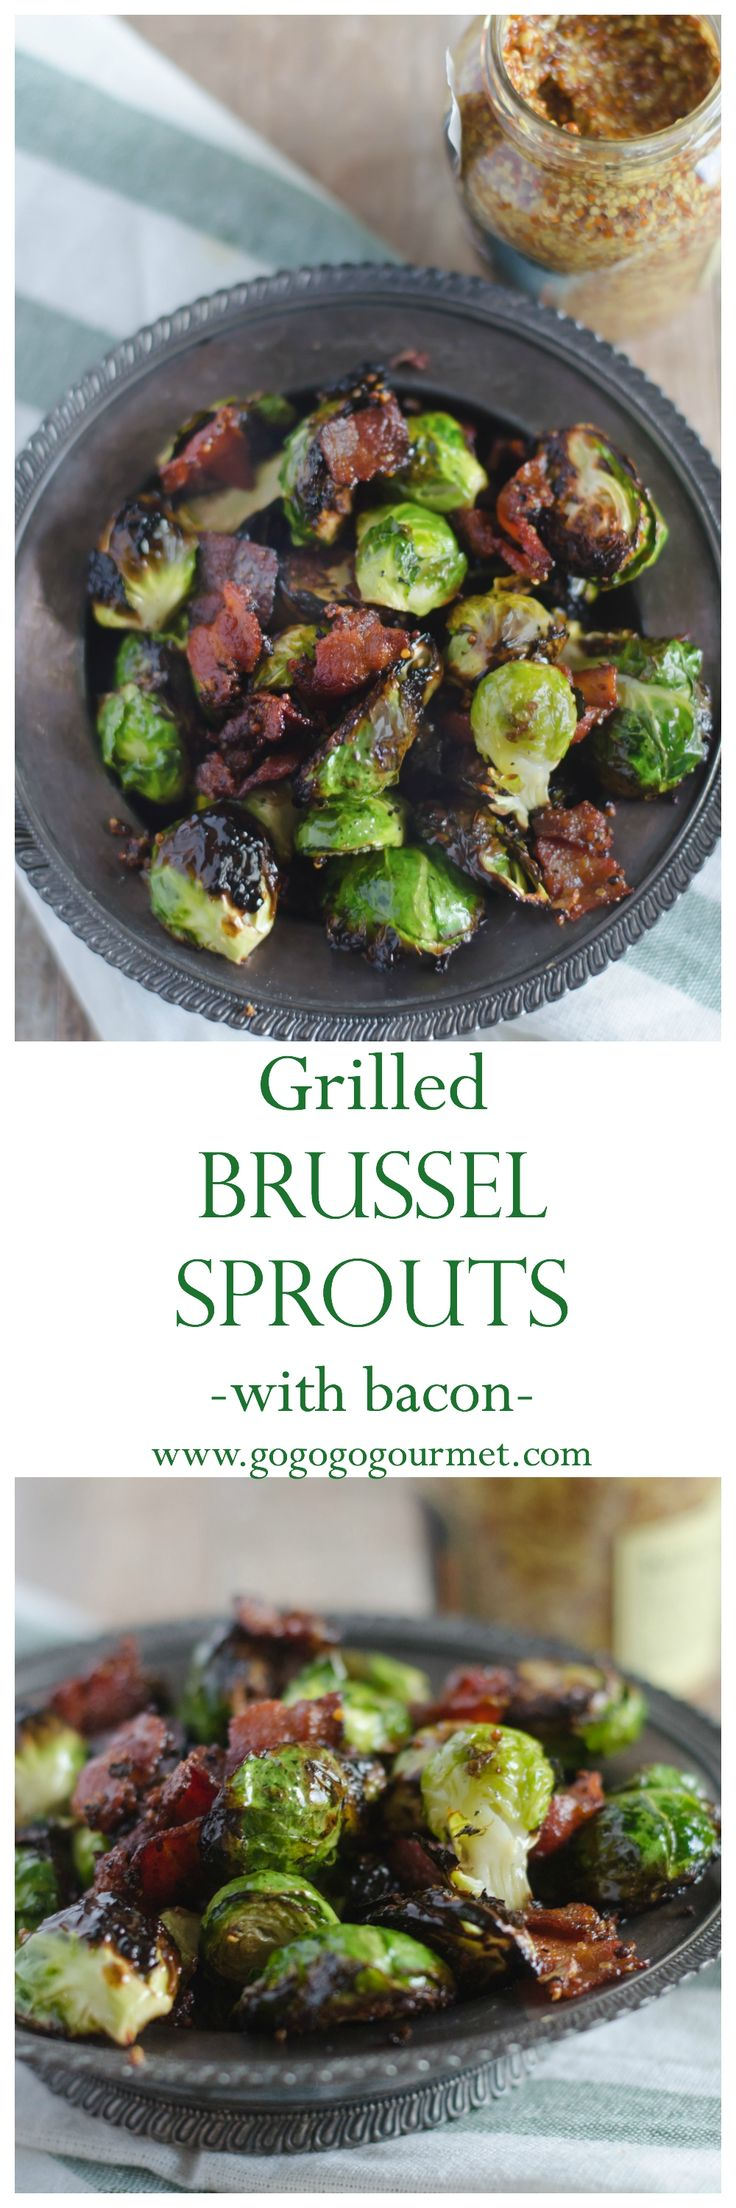 Grilled Brussel Sprouts with Bacon and Mustard Vinaigrette- these are the BEST way to make brussel sprouts EVER!   Go Go Go Gourmet @gogogogourmet